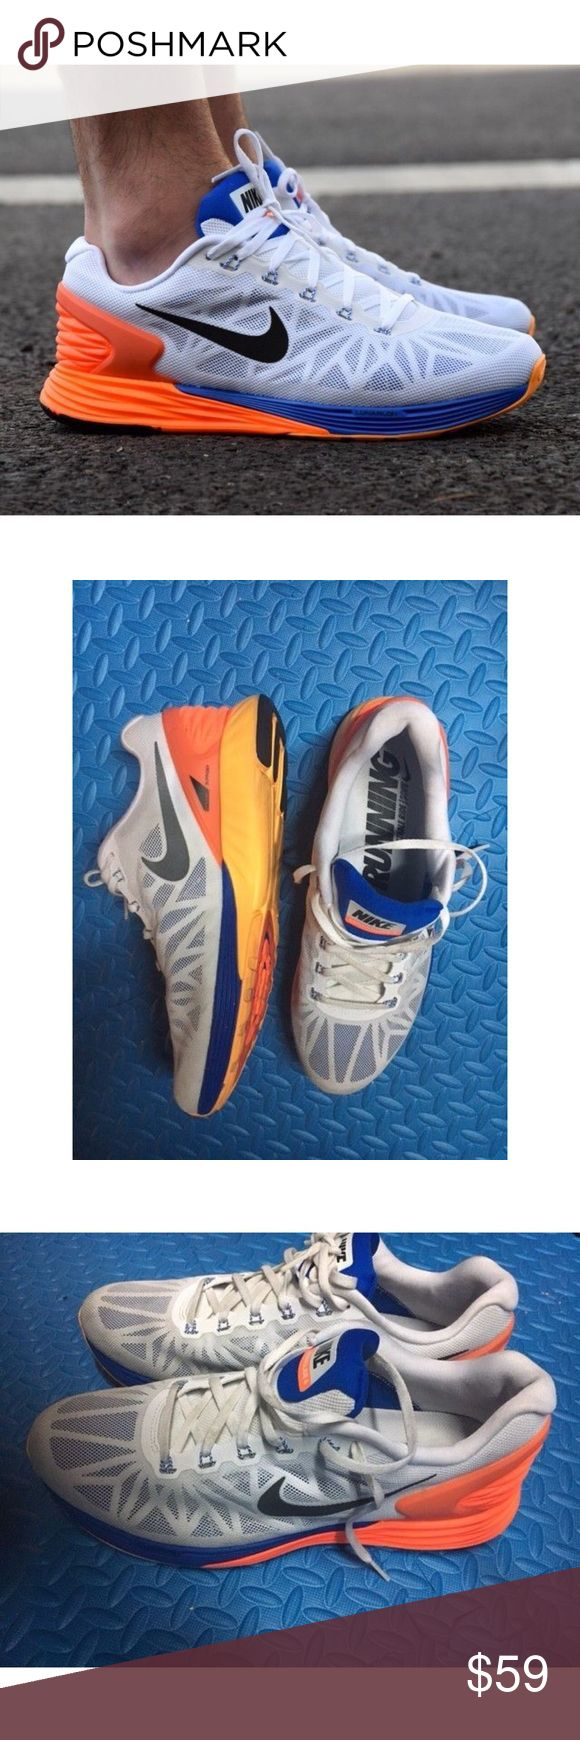 NIKE LUNARGLIDE 6 Mens Athletic Orange Blue Shoes Nike Lunarglide 6 mens running shoes. size 11.5 Color: white, orange, and blue. Preowned. Worn a handful of times. Some marks / scuff and soil at front. Sold as is. No box. Nike Shoes Sneakers